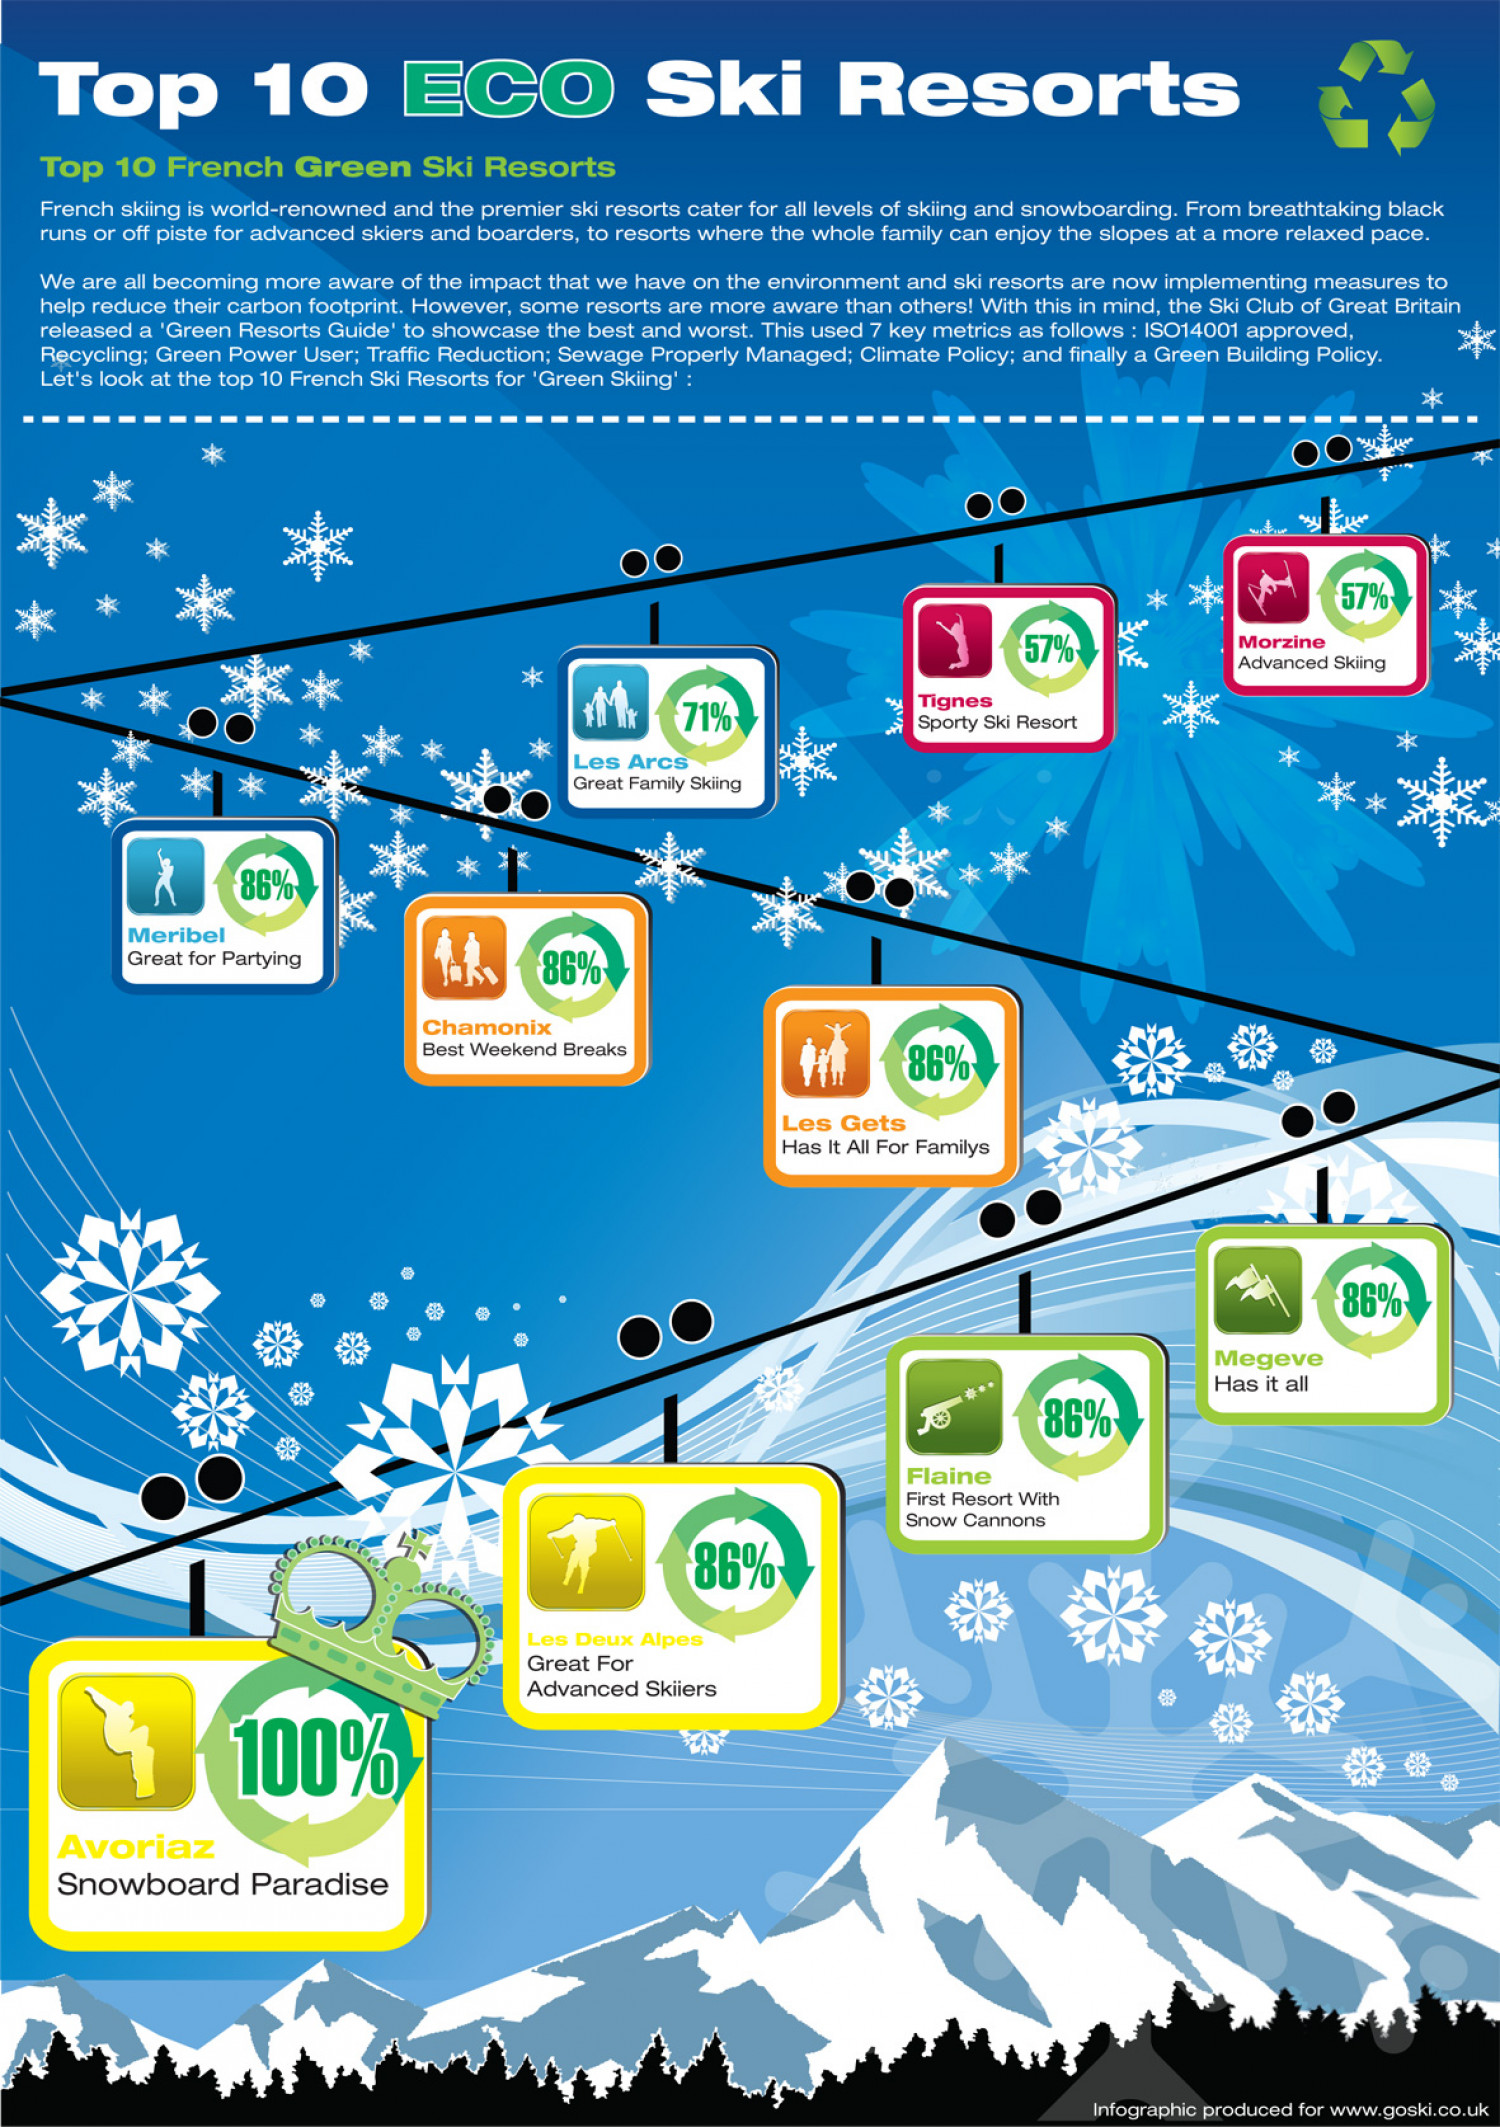 Top 10 Eco Ski Resorts Infographic